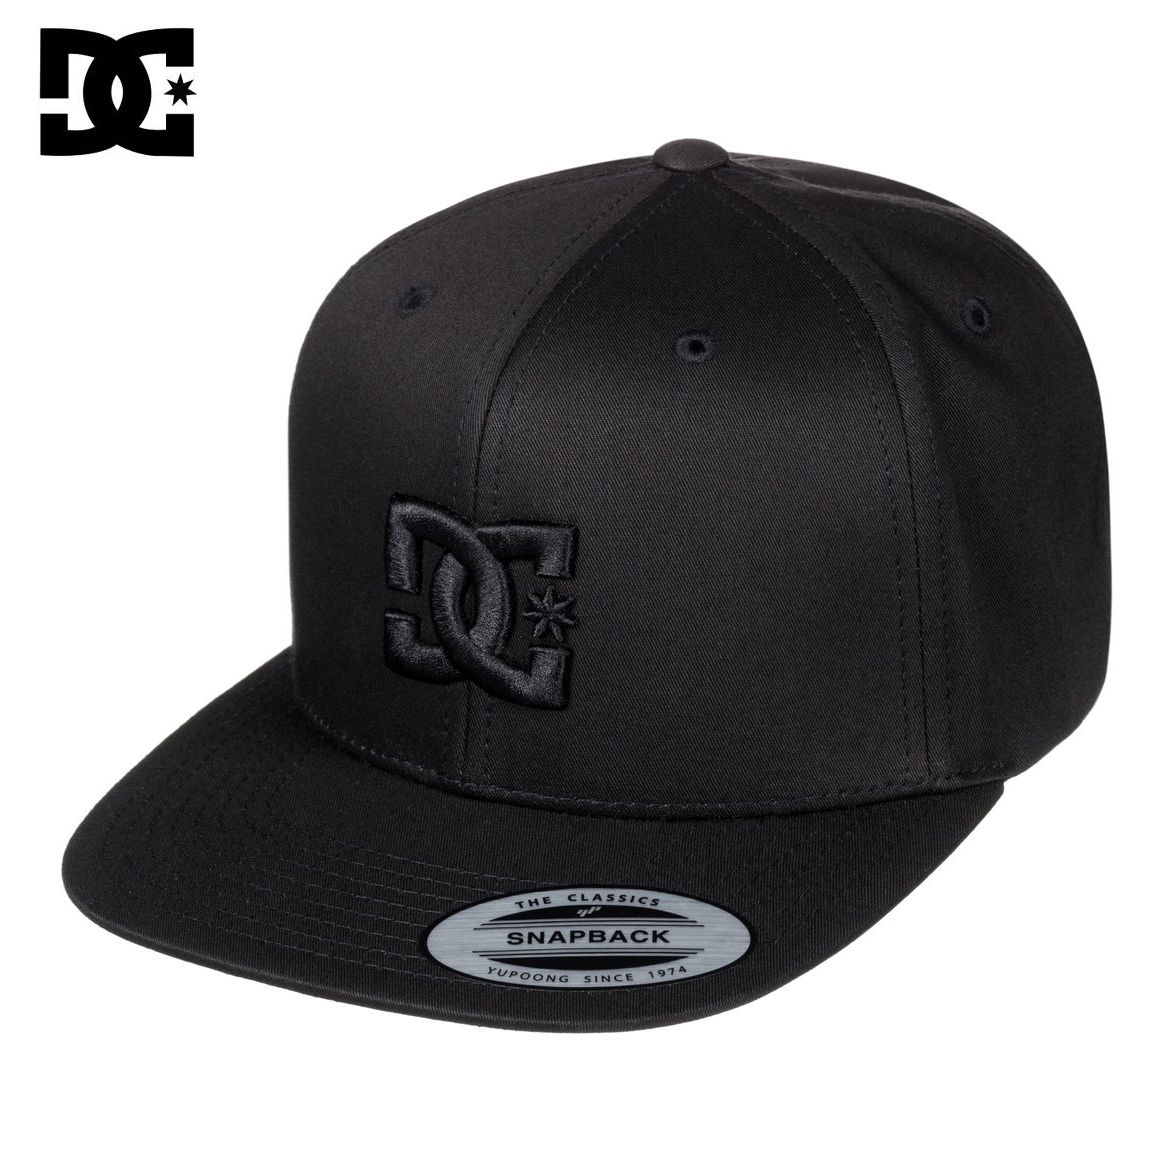 06e6691e DC Snappy Snapback Hat PRODUCT INFO Men's Snappy Snapback Hat The nuts and  bolts. Margin builder 6-panel cotton snapback design